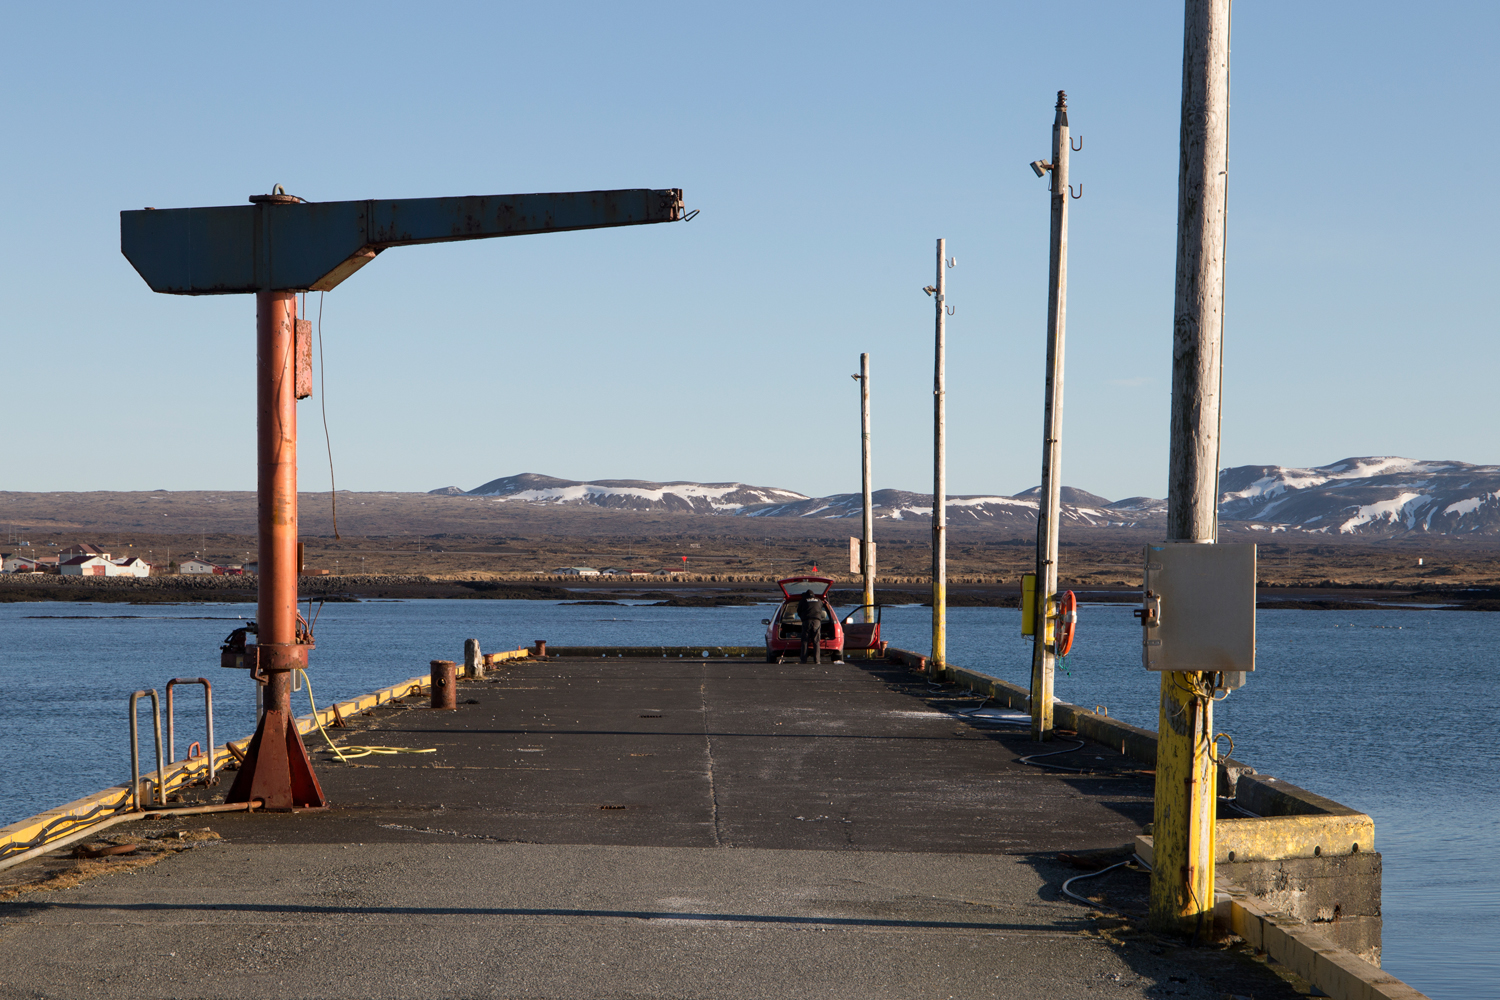 A man has parked his tiny red car at the end of a pier and is unloading his fishing gear while the sun is shining on a deserted harbour framed by distant mountains.